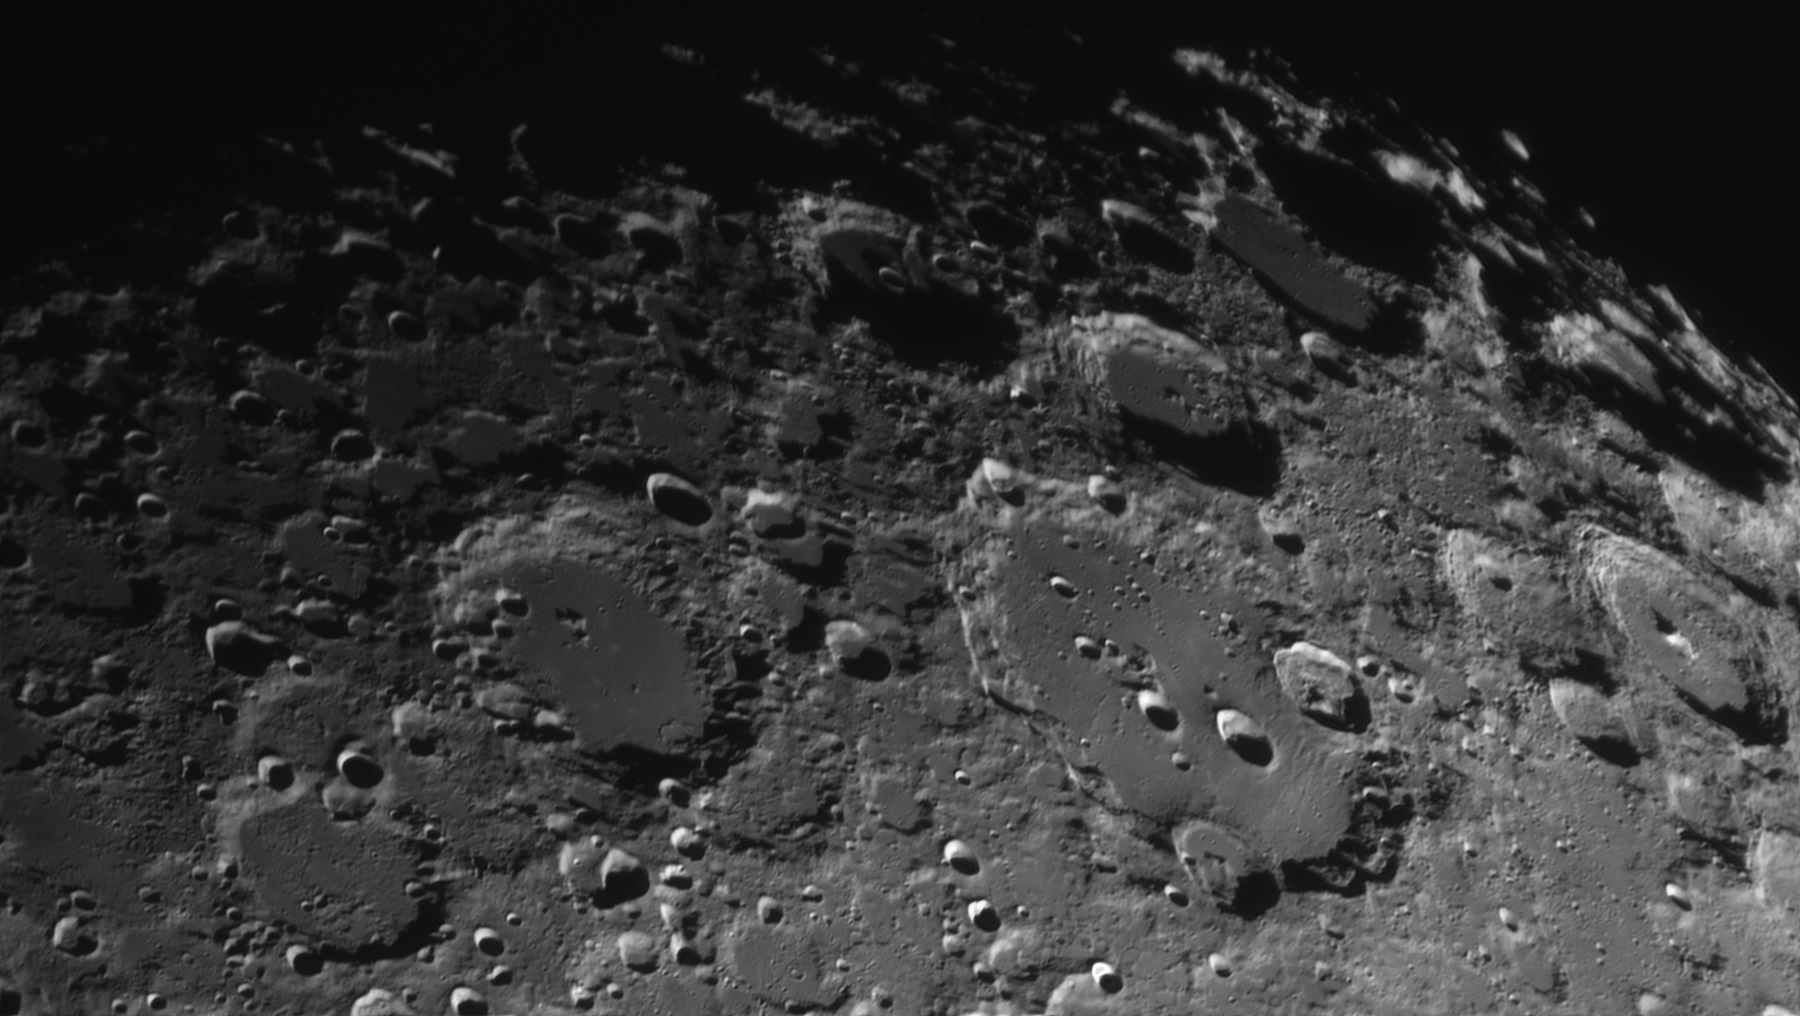 Nice detail of Clavius 4th March 2020 by Phil Rourke